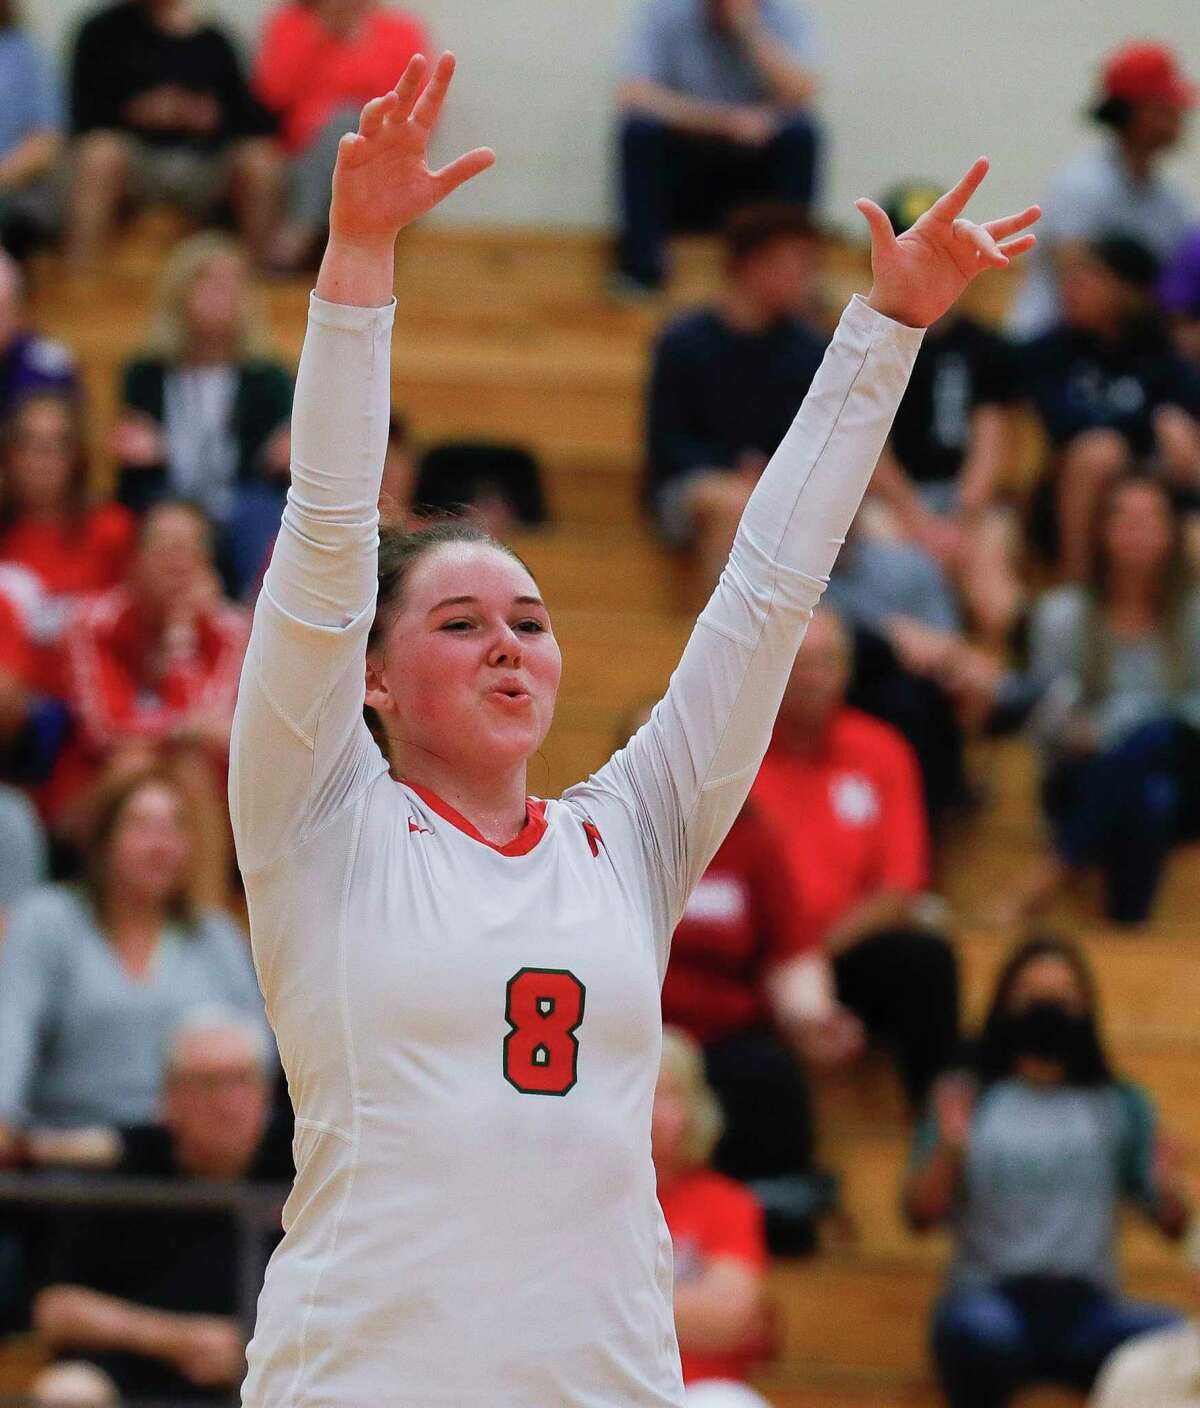 The Woodlands' Cassidy MacLean (8) reacts after a blocked shot during the first set of a high school volleyball match at The Woodlands High School, Tuesday, Sept. 28, 2021, in The Woodlands.